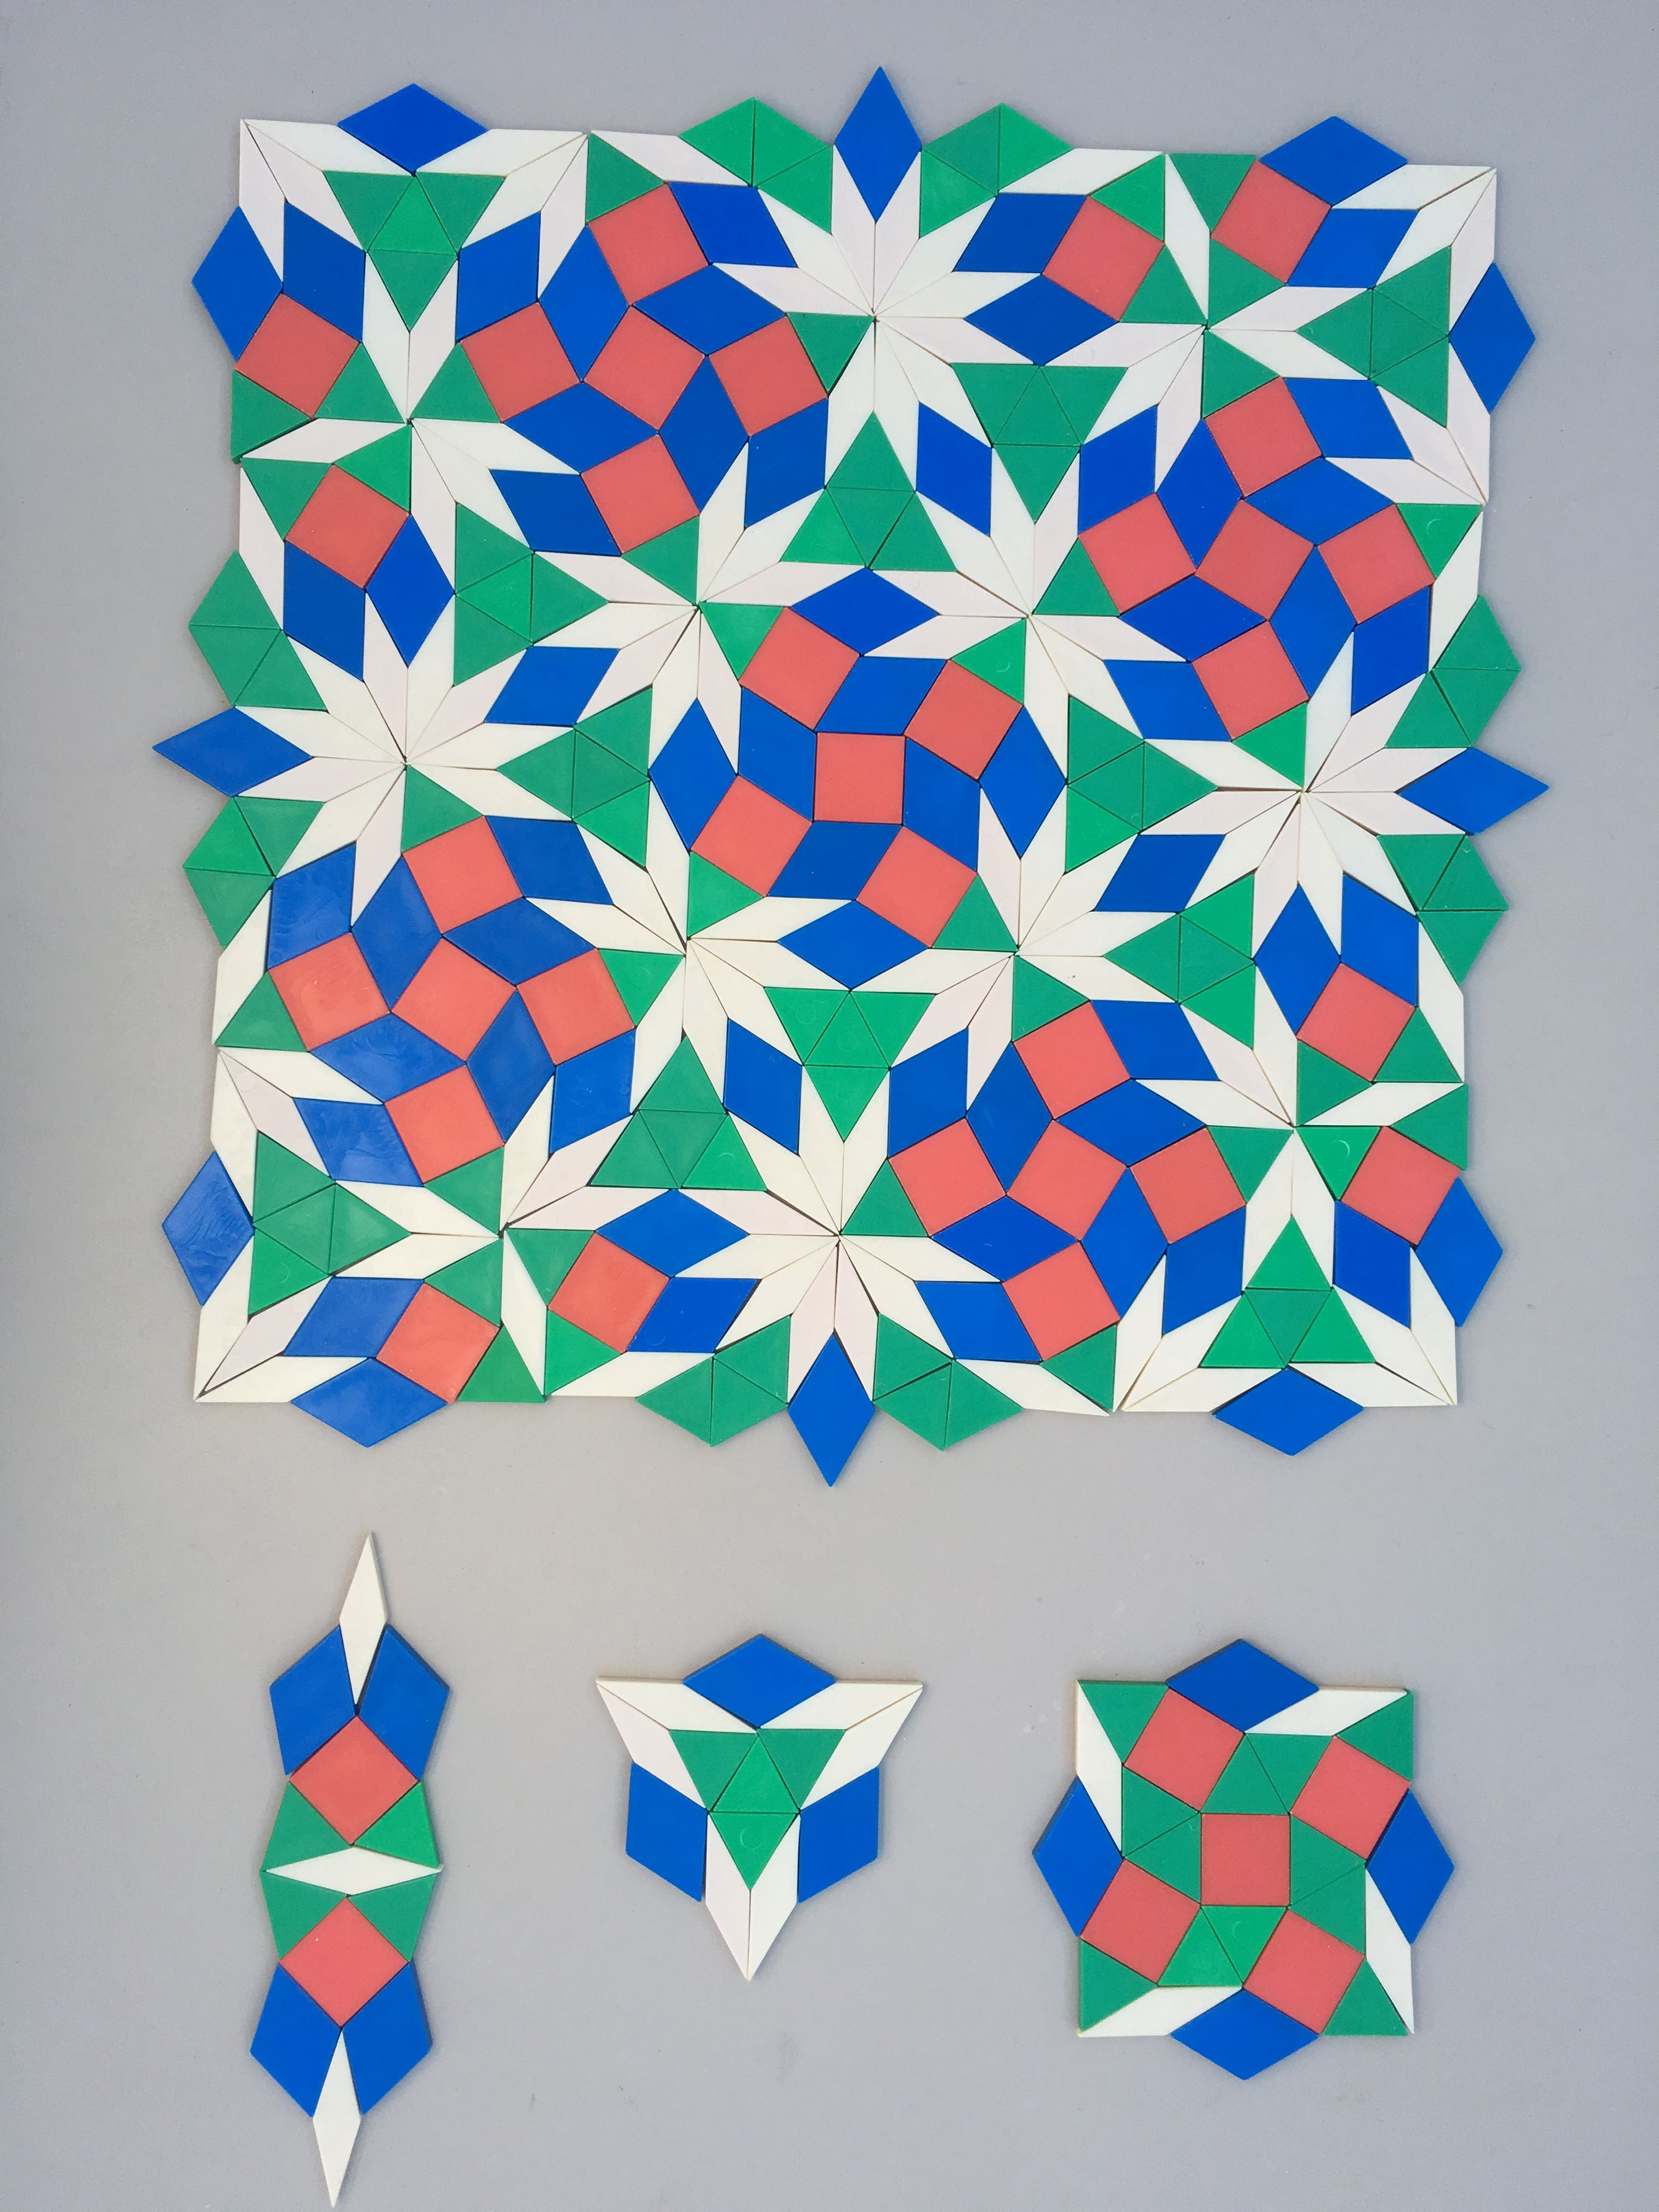 The sixth simple nonperiodic tiling using pattern blocks ...